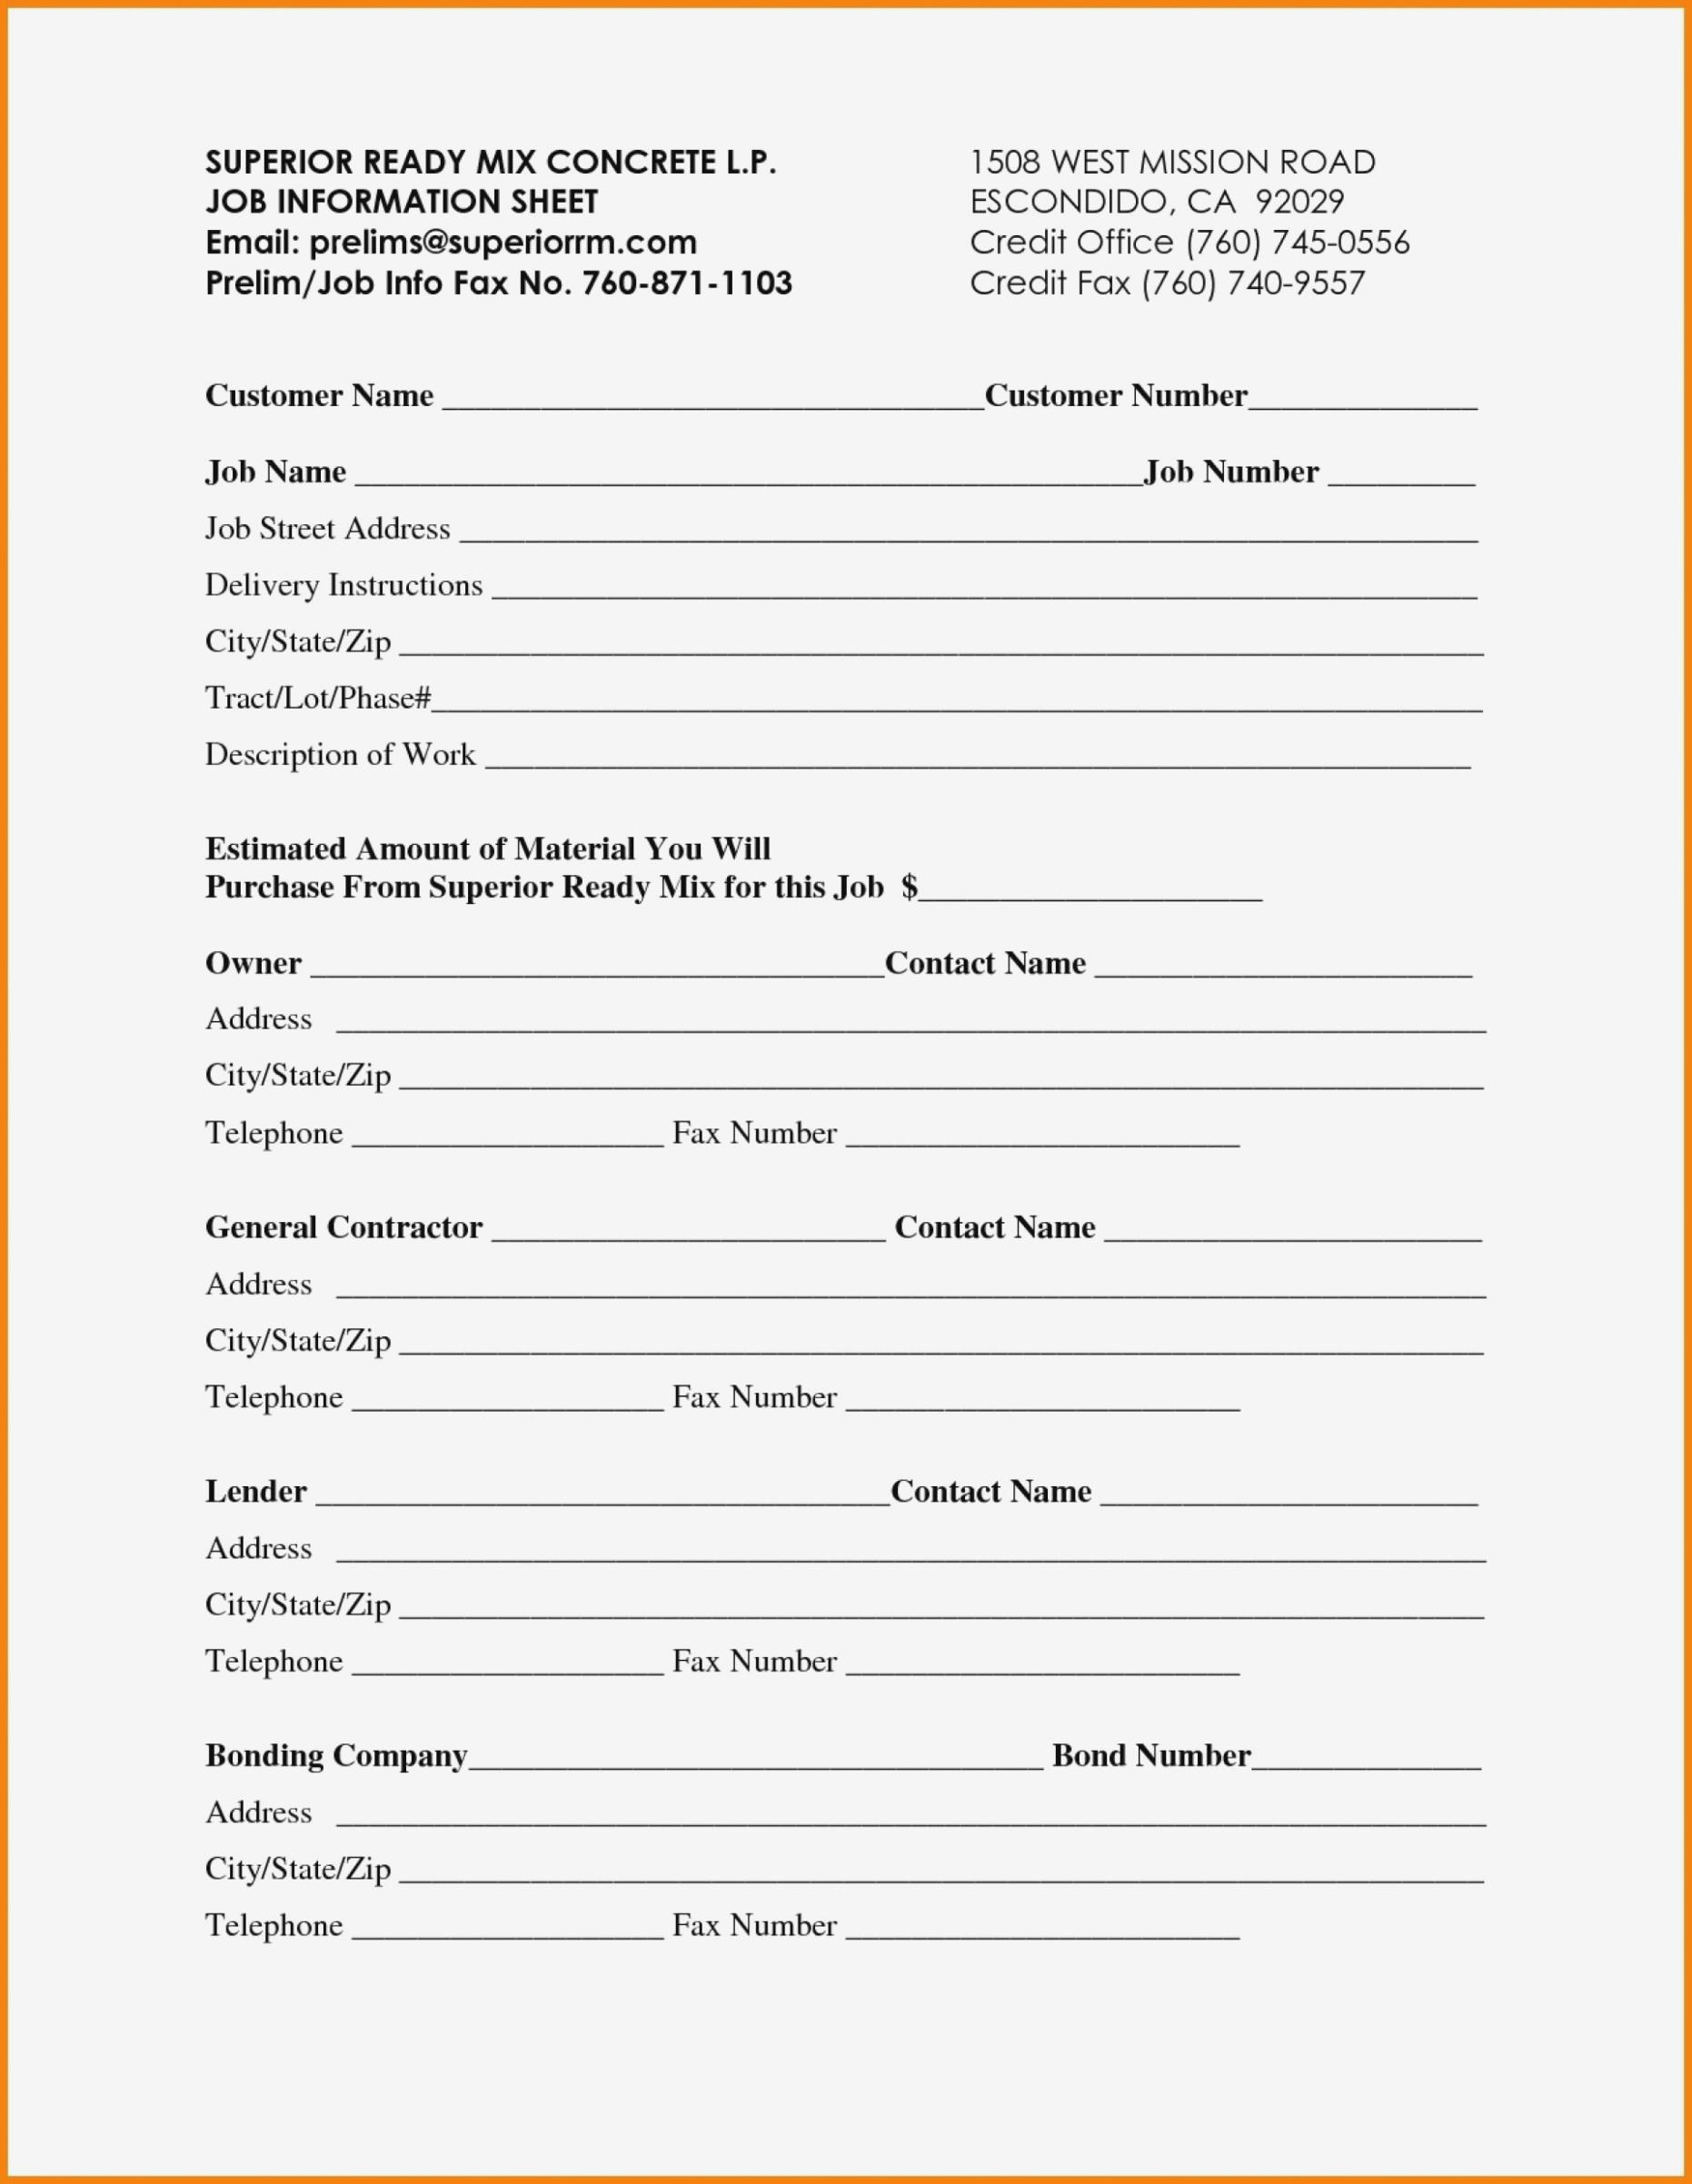 2016 Form 1096 Template